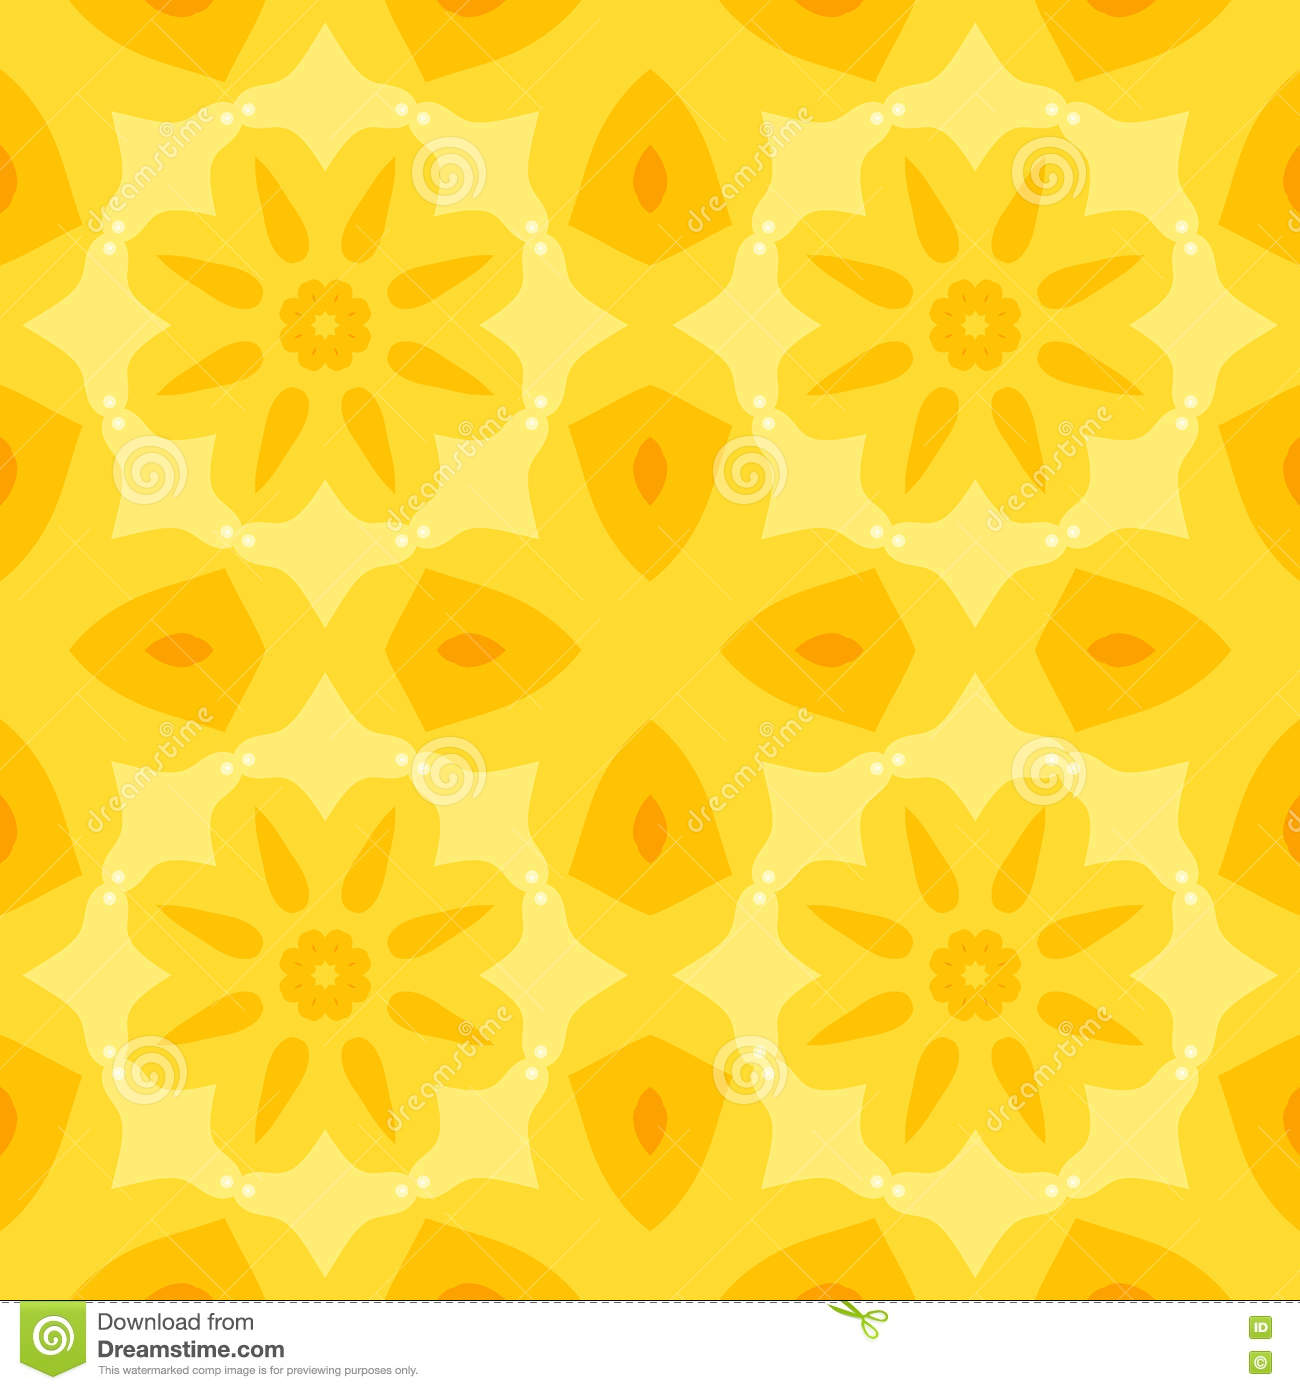 Bed sheet pattern texture - Bed Sheet Pattern Texture Seamless Simple Texture With A Yellow Flower And Stylized Orange Leaves